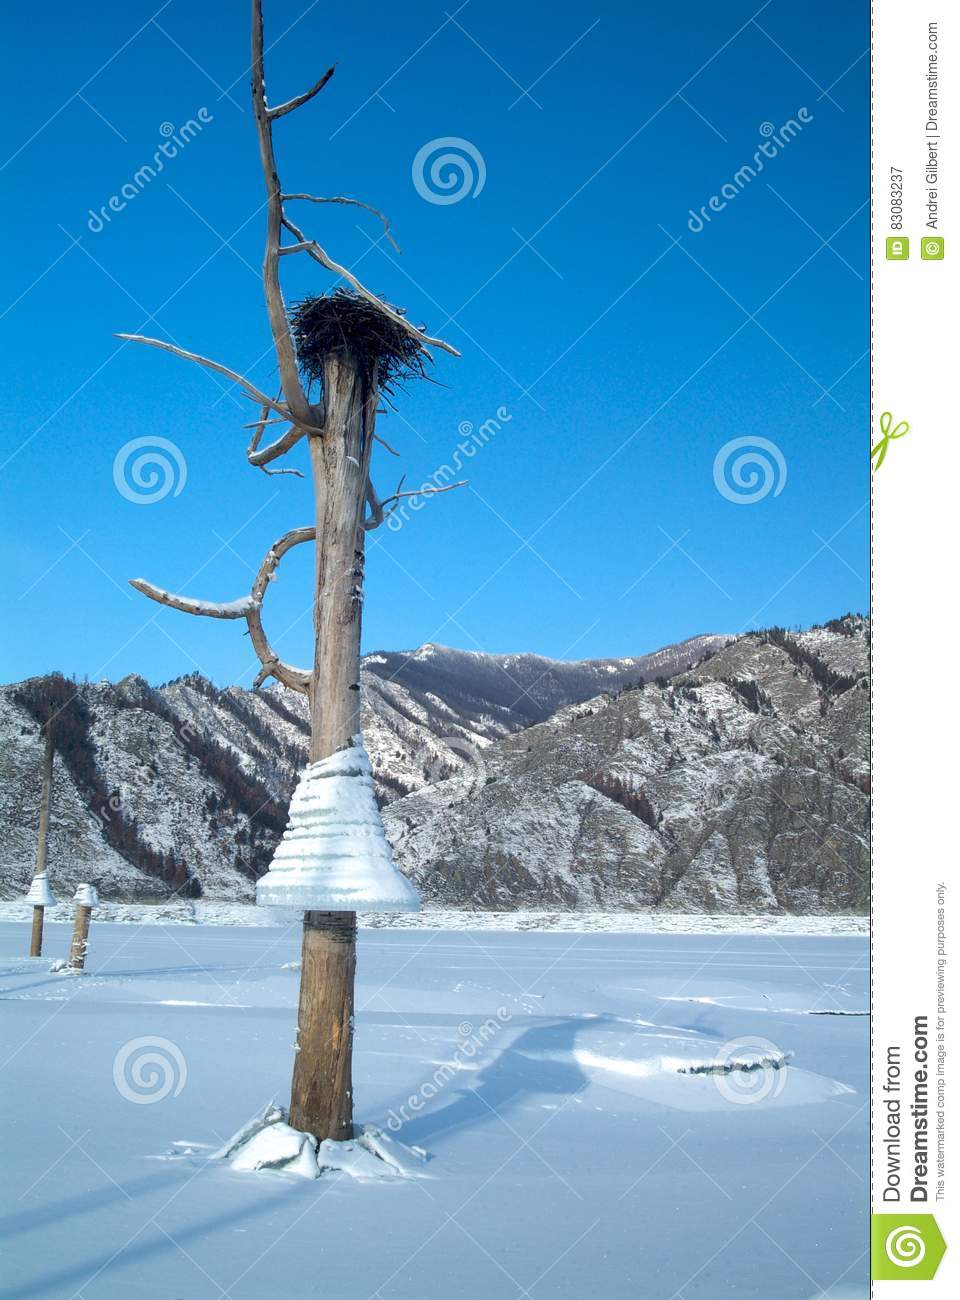 Icicles on a tree, background of mountains in the lake, bird`s nest